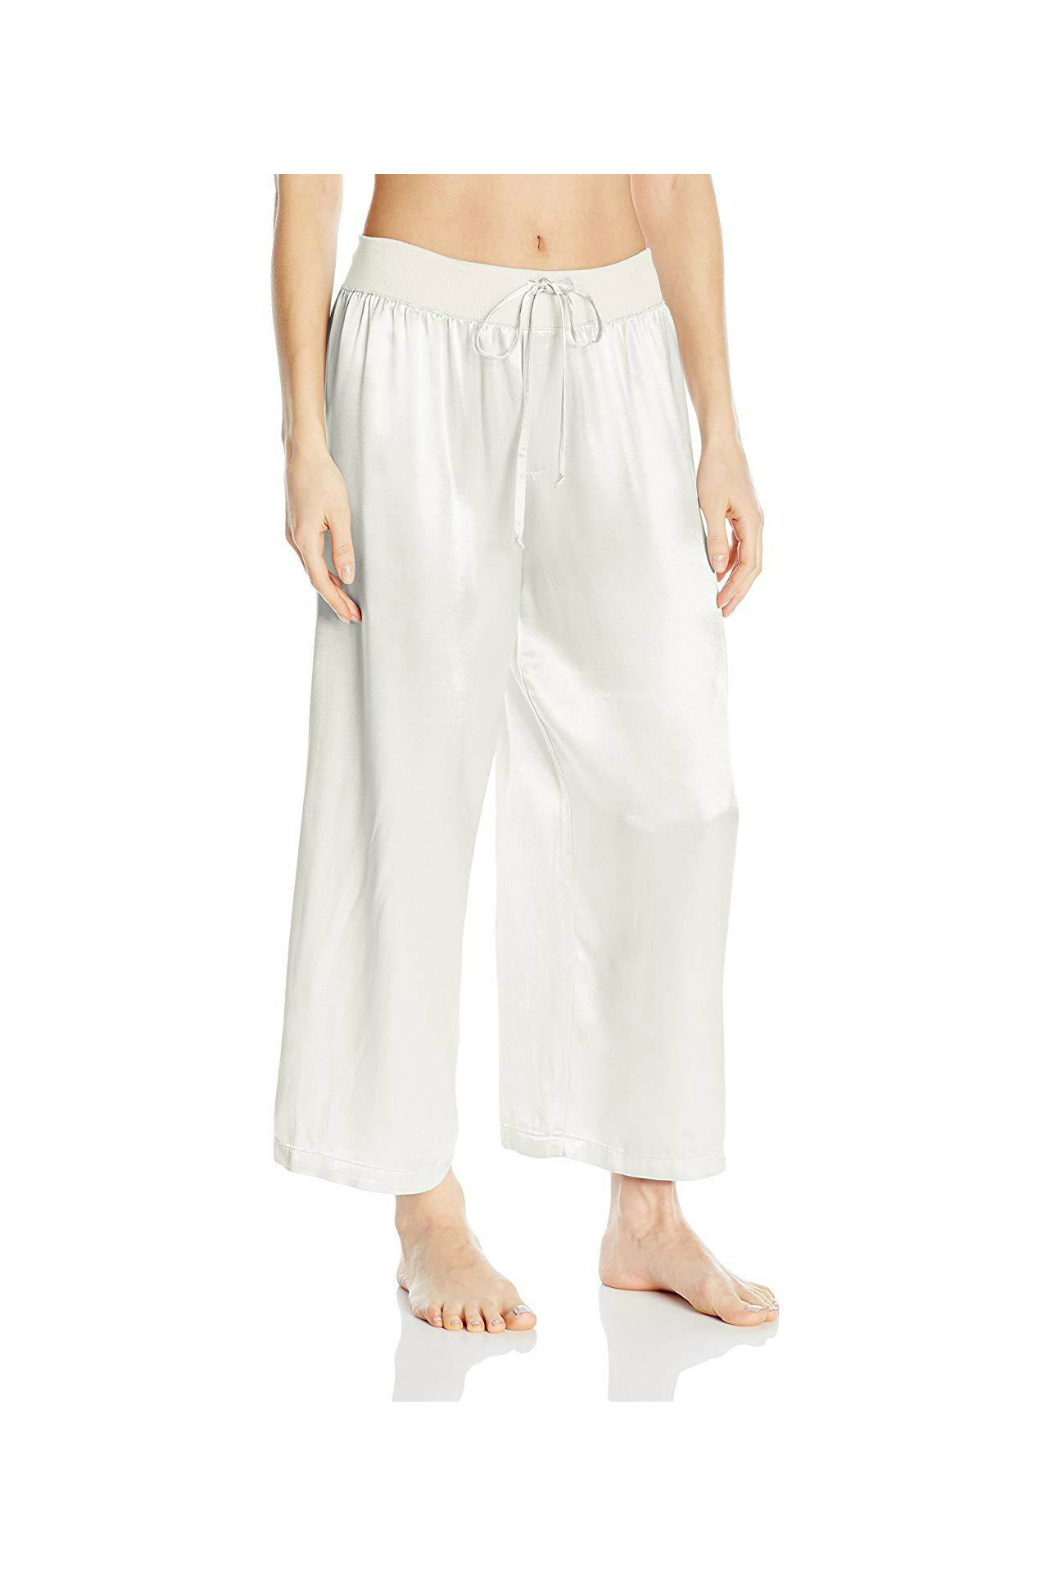 PJHARLOW Satin Ankle Pant With Rib Waistband And Adjustable Drawstring - Front Cropped Image